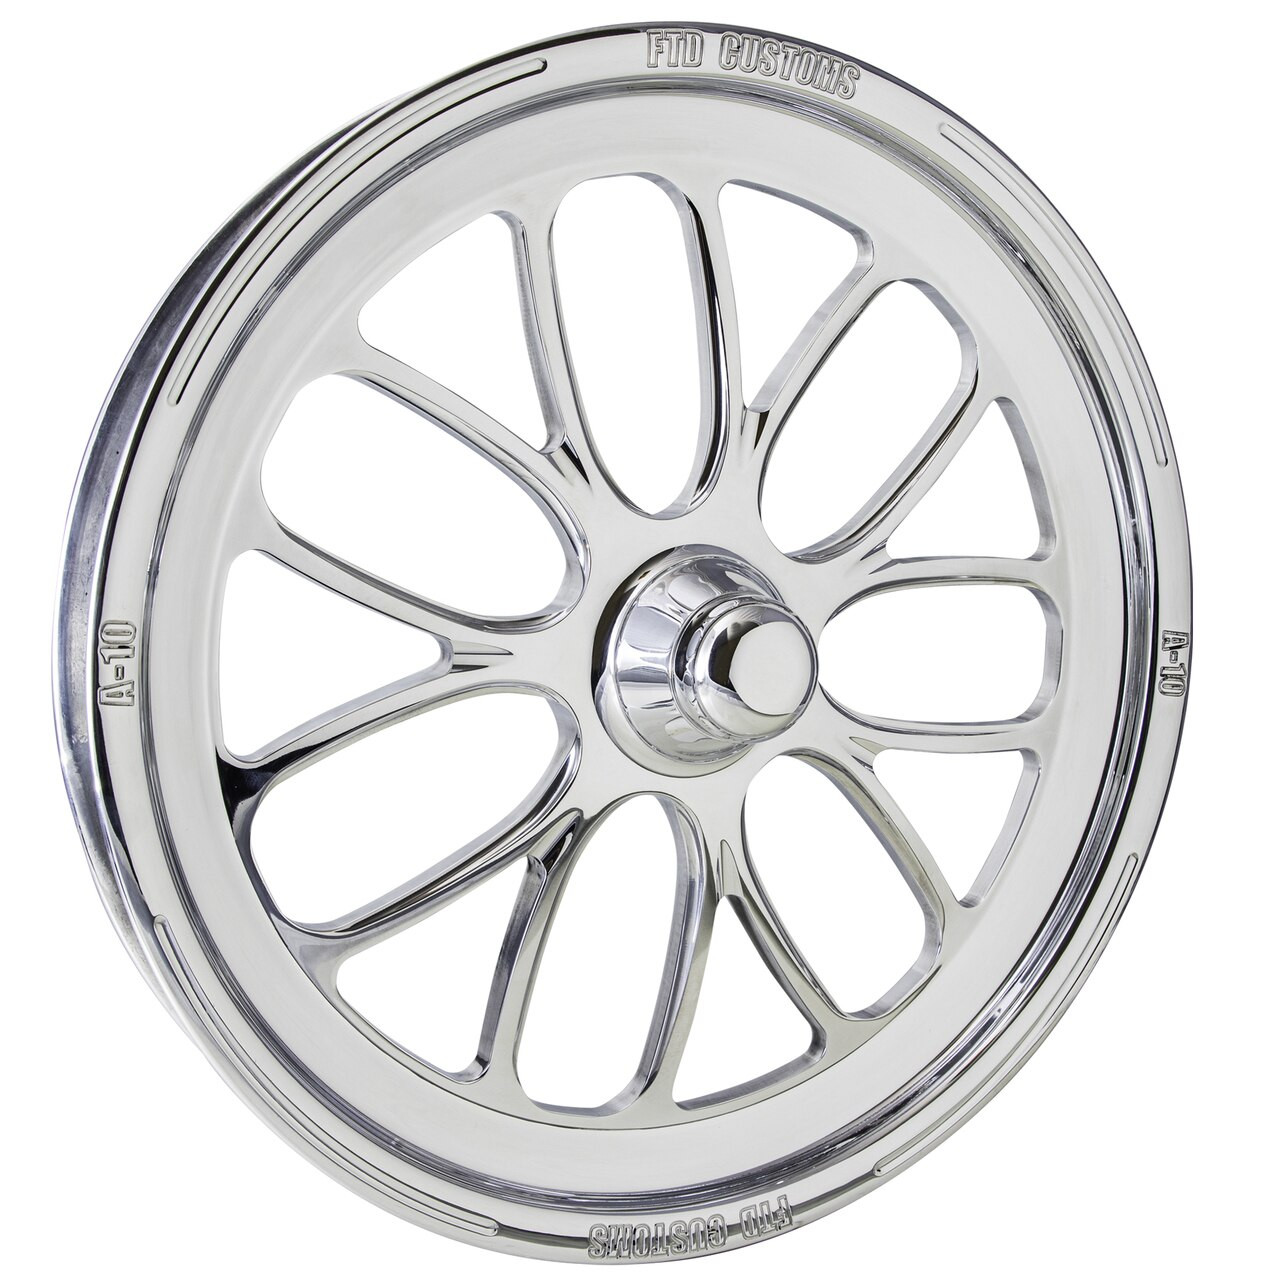 FTD Customs A-10 Dragster Front Wheel